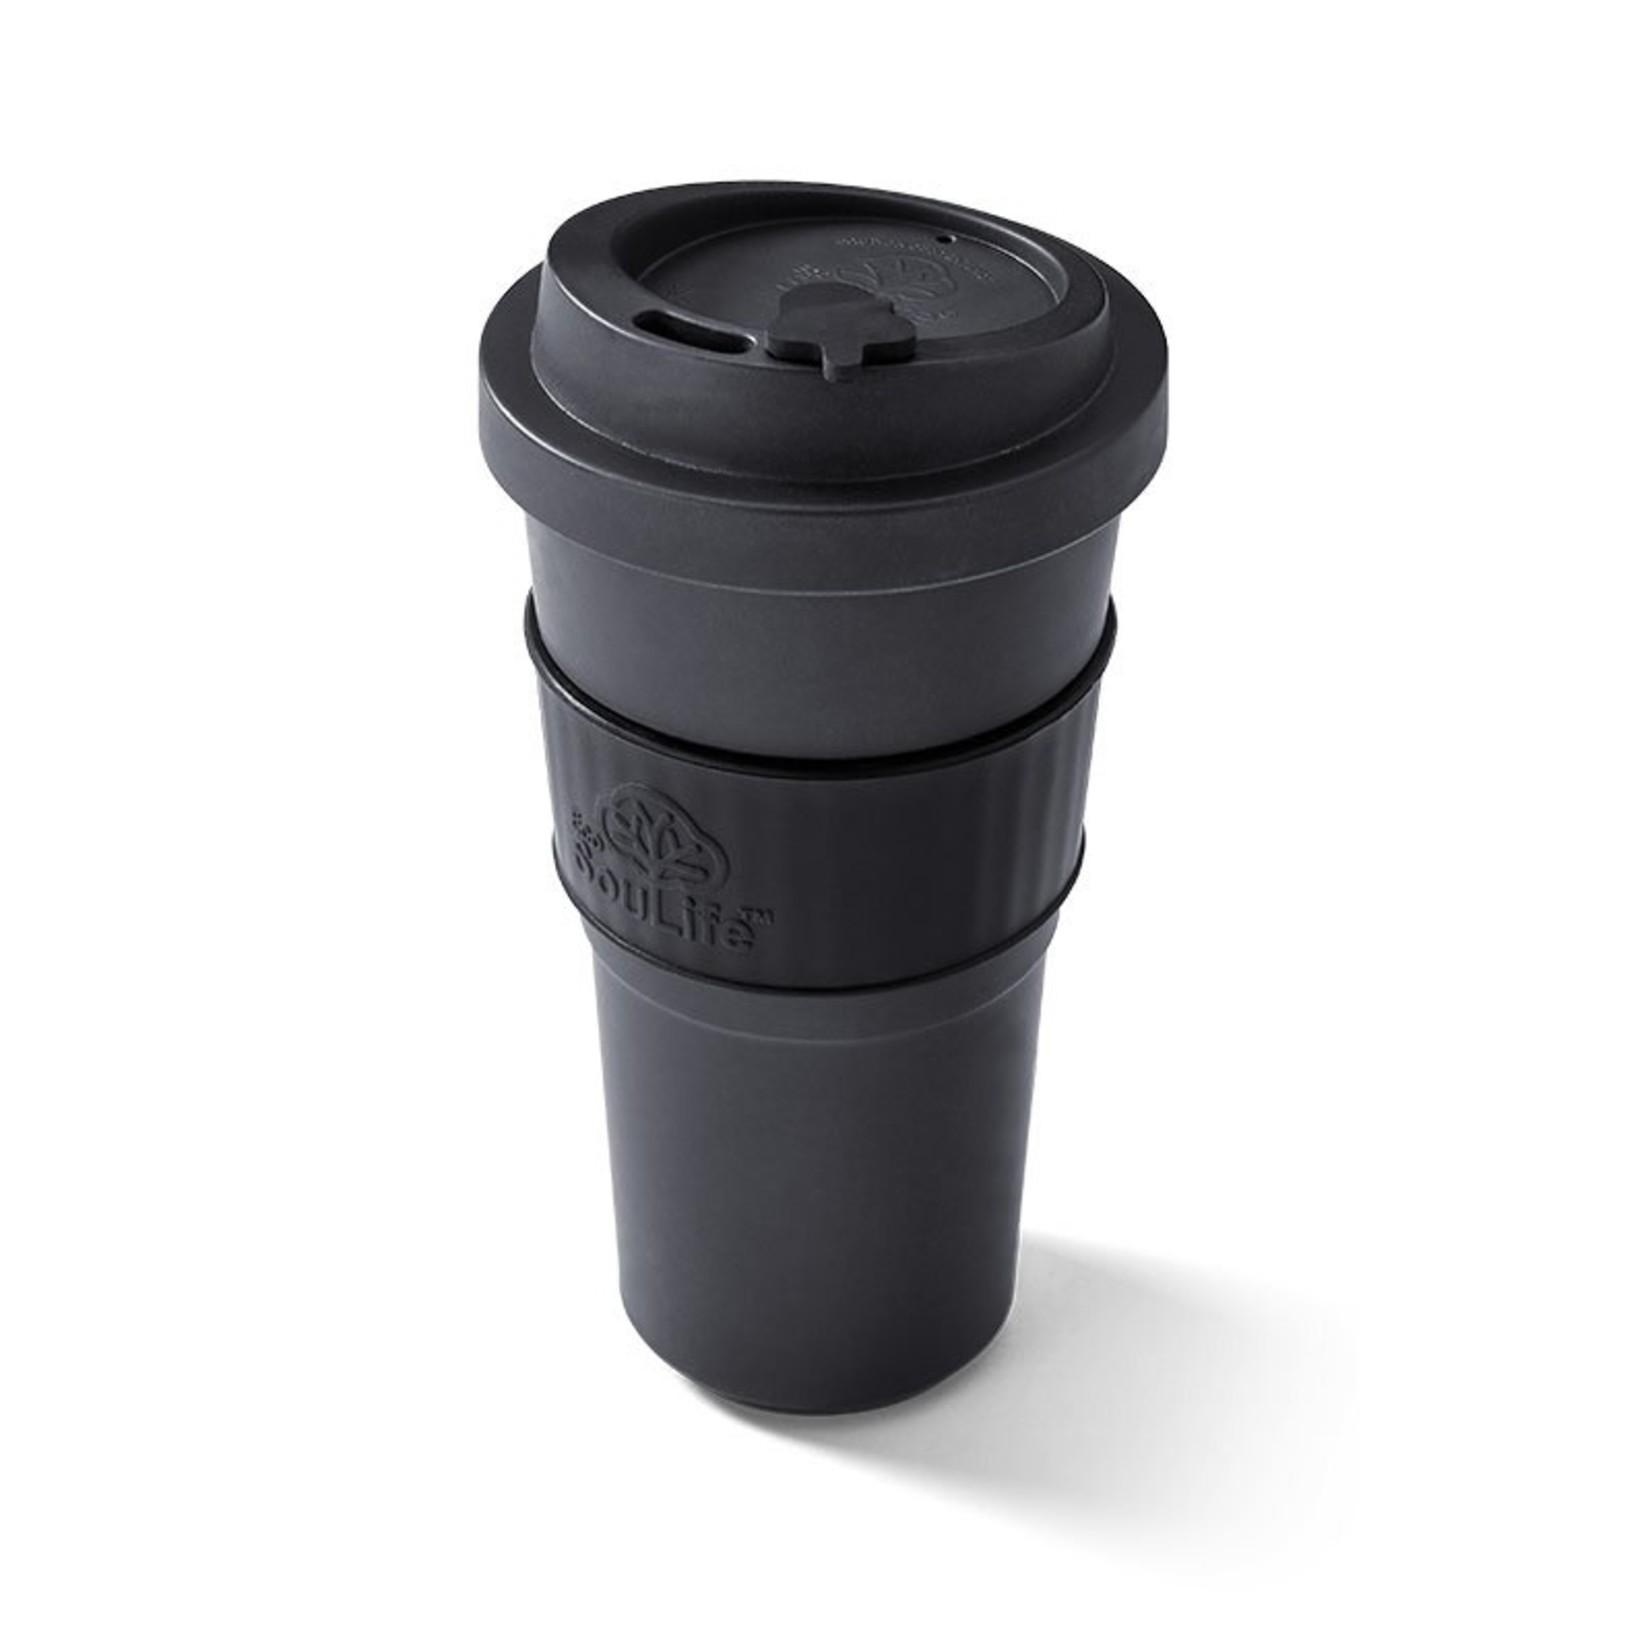 EcoSoulife EcoSoulife 20oz BioSip Cup